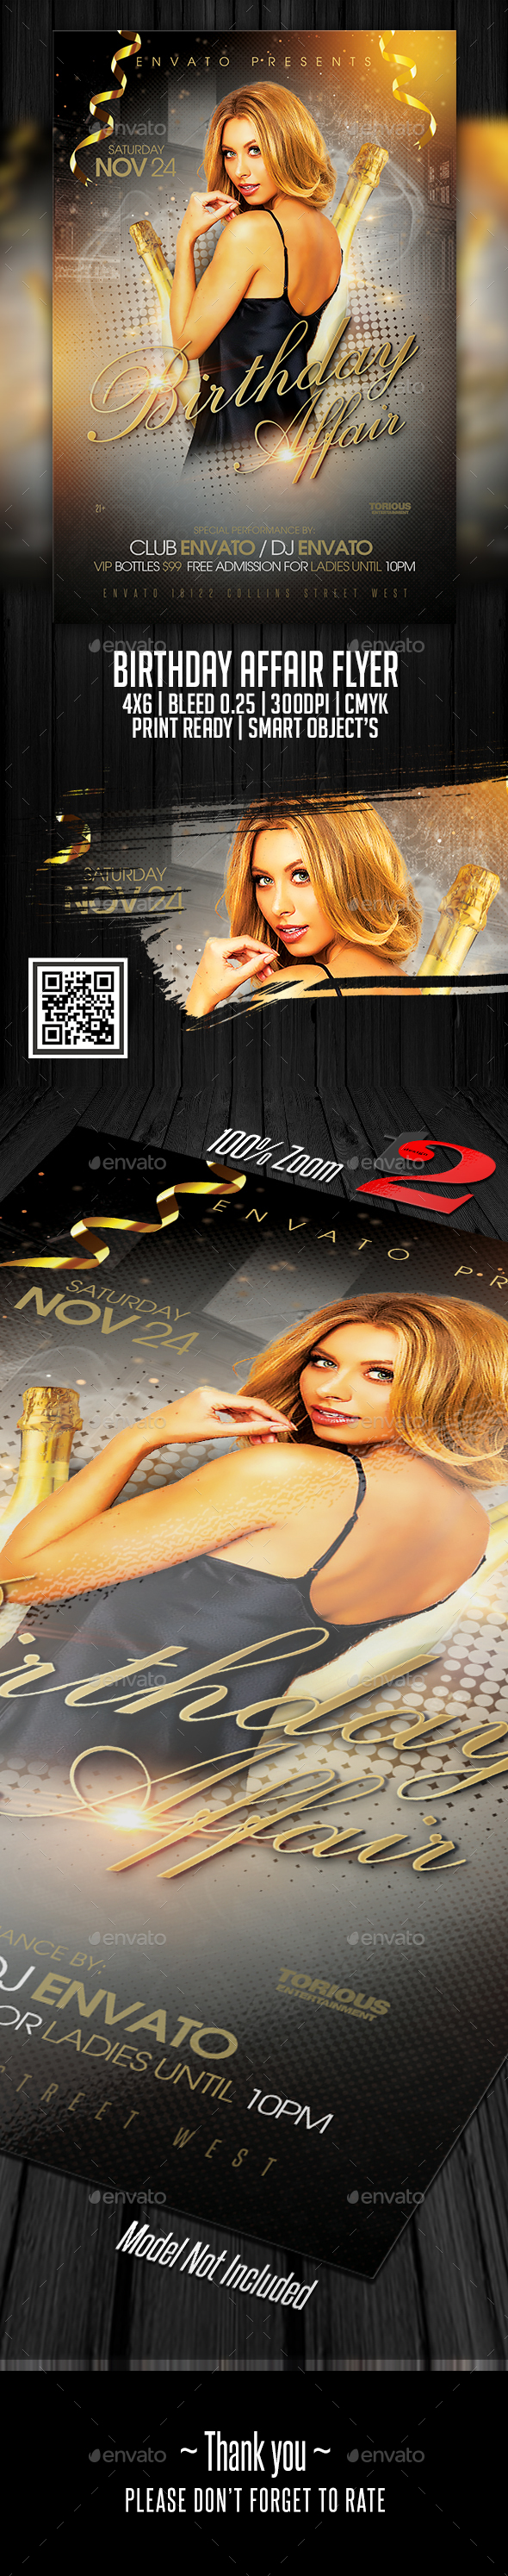 Birthday Affair Flyer Template - Clubs & Parties Events